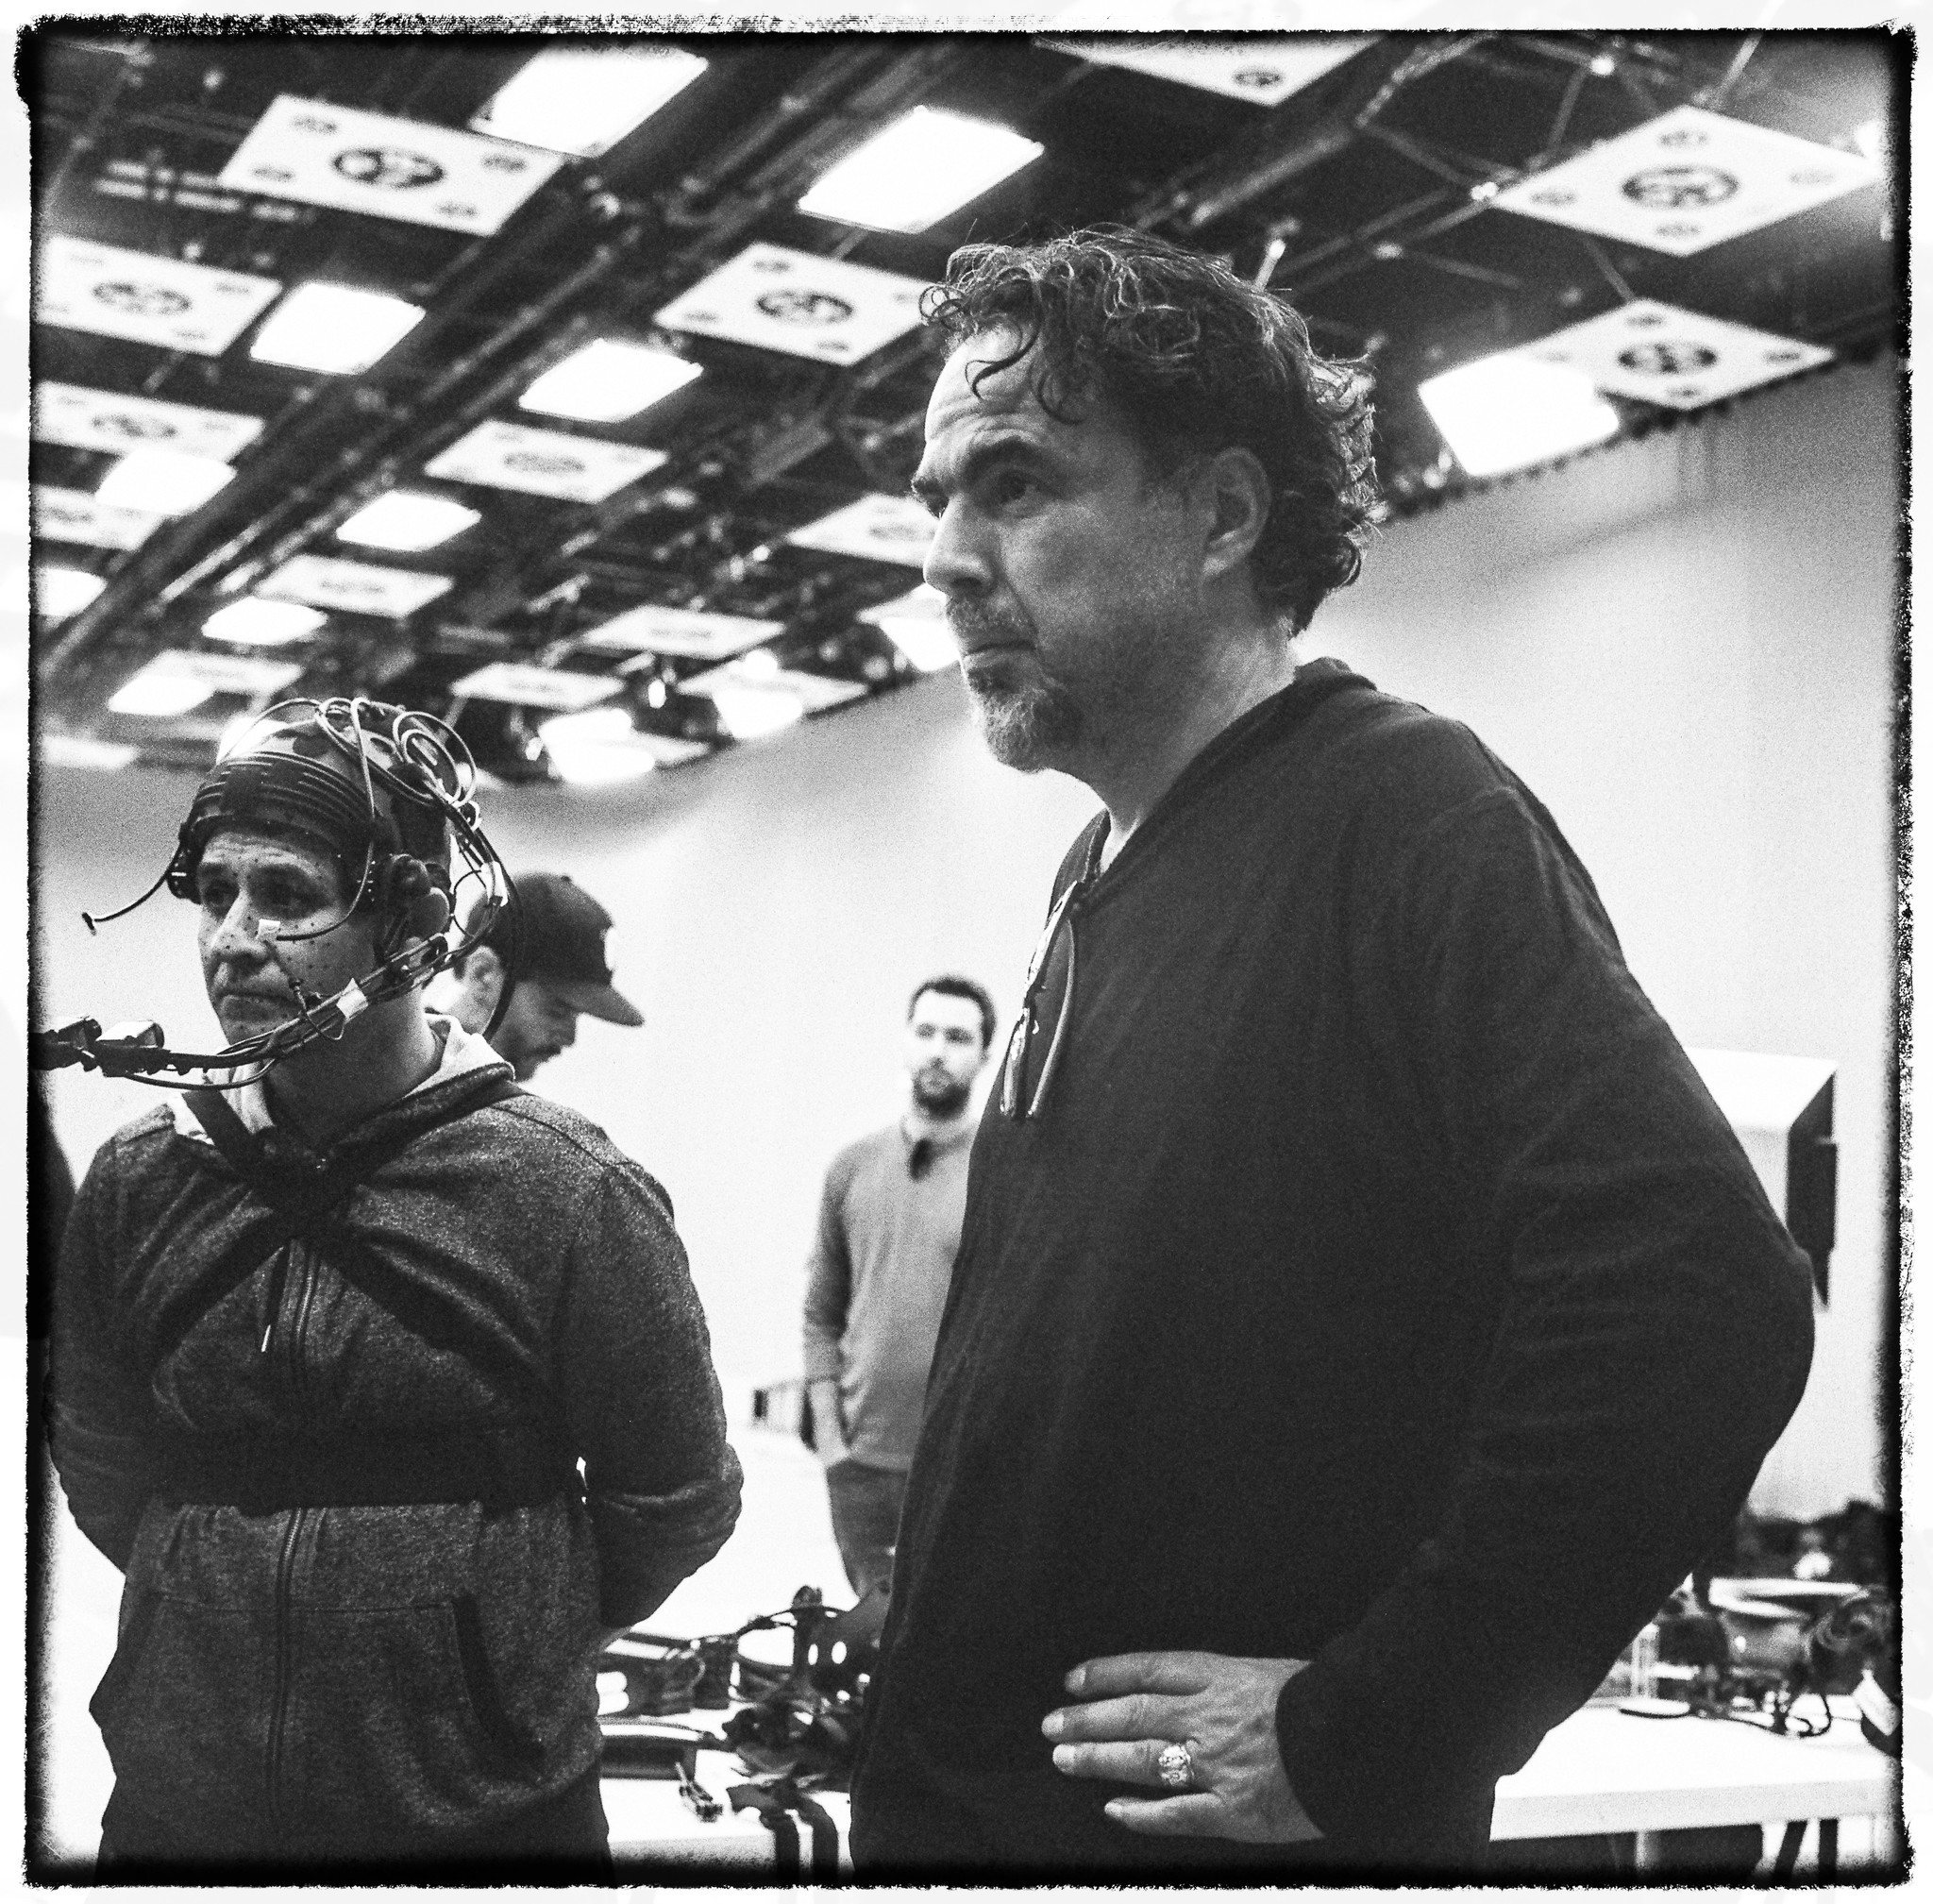 Alejandro Gonzalez Iñárritu, right, on the set of a VR project that puts you in the desert with Latin American immigrants under assault.